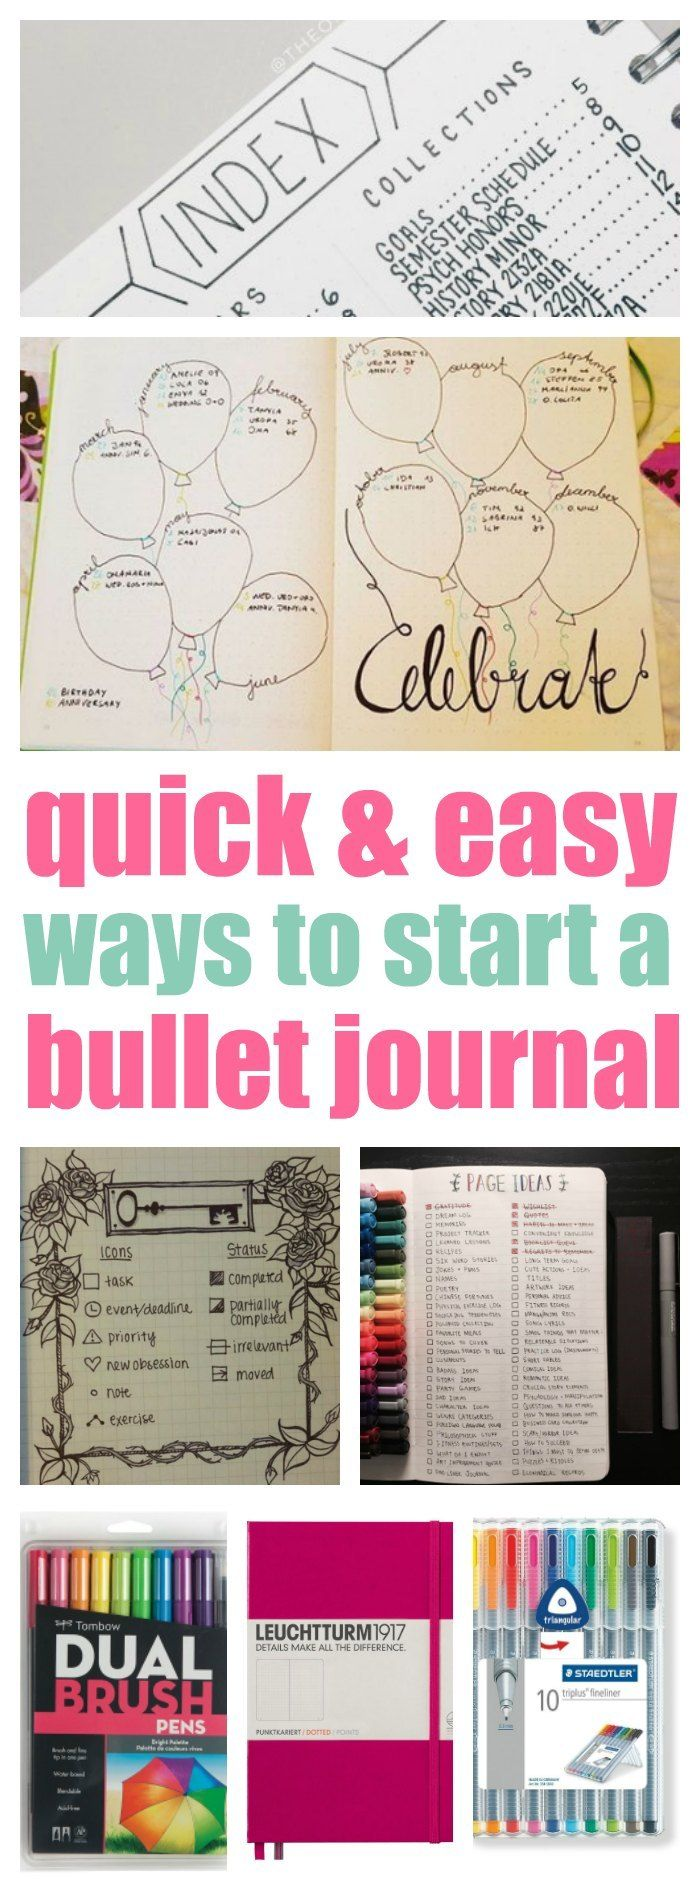 FINALLY! Instructions that make starting a bullet journal easy. It always seems so confusing but this post keeps it simple. Can't wait to get started!!!